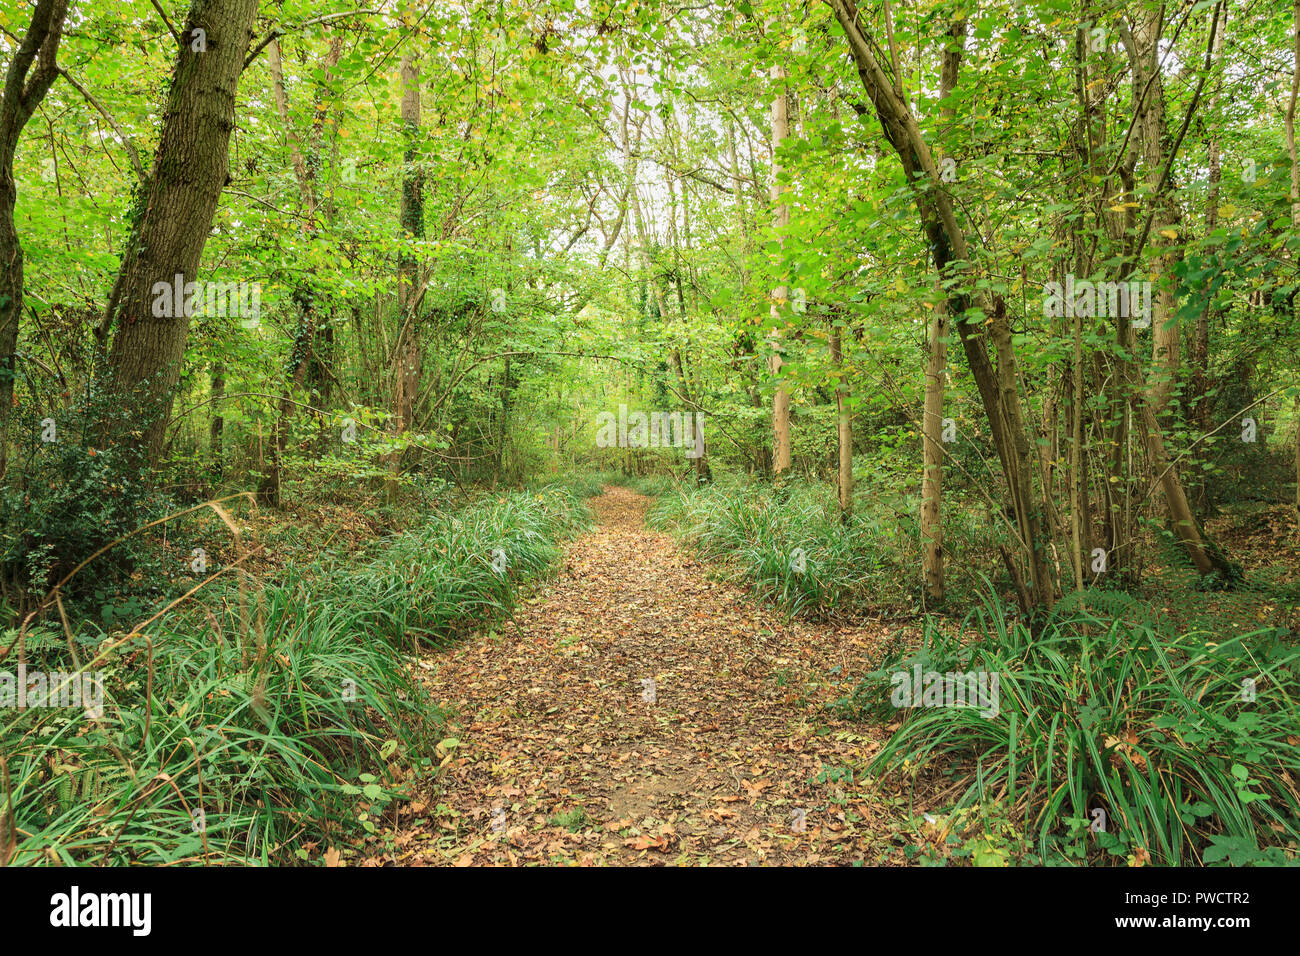 Binsted Woods, an ancient wood of wandering footpaths and bridle way, near the village of Binsted West Sussex. - Stock Image